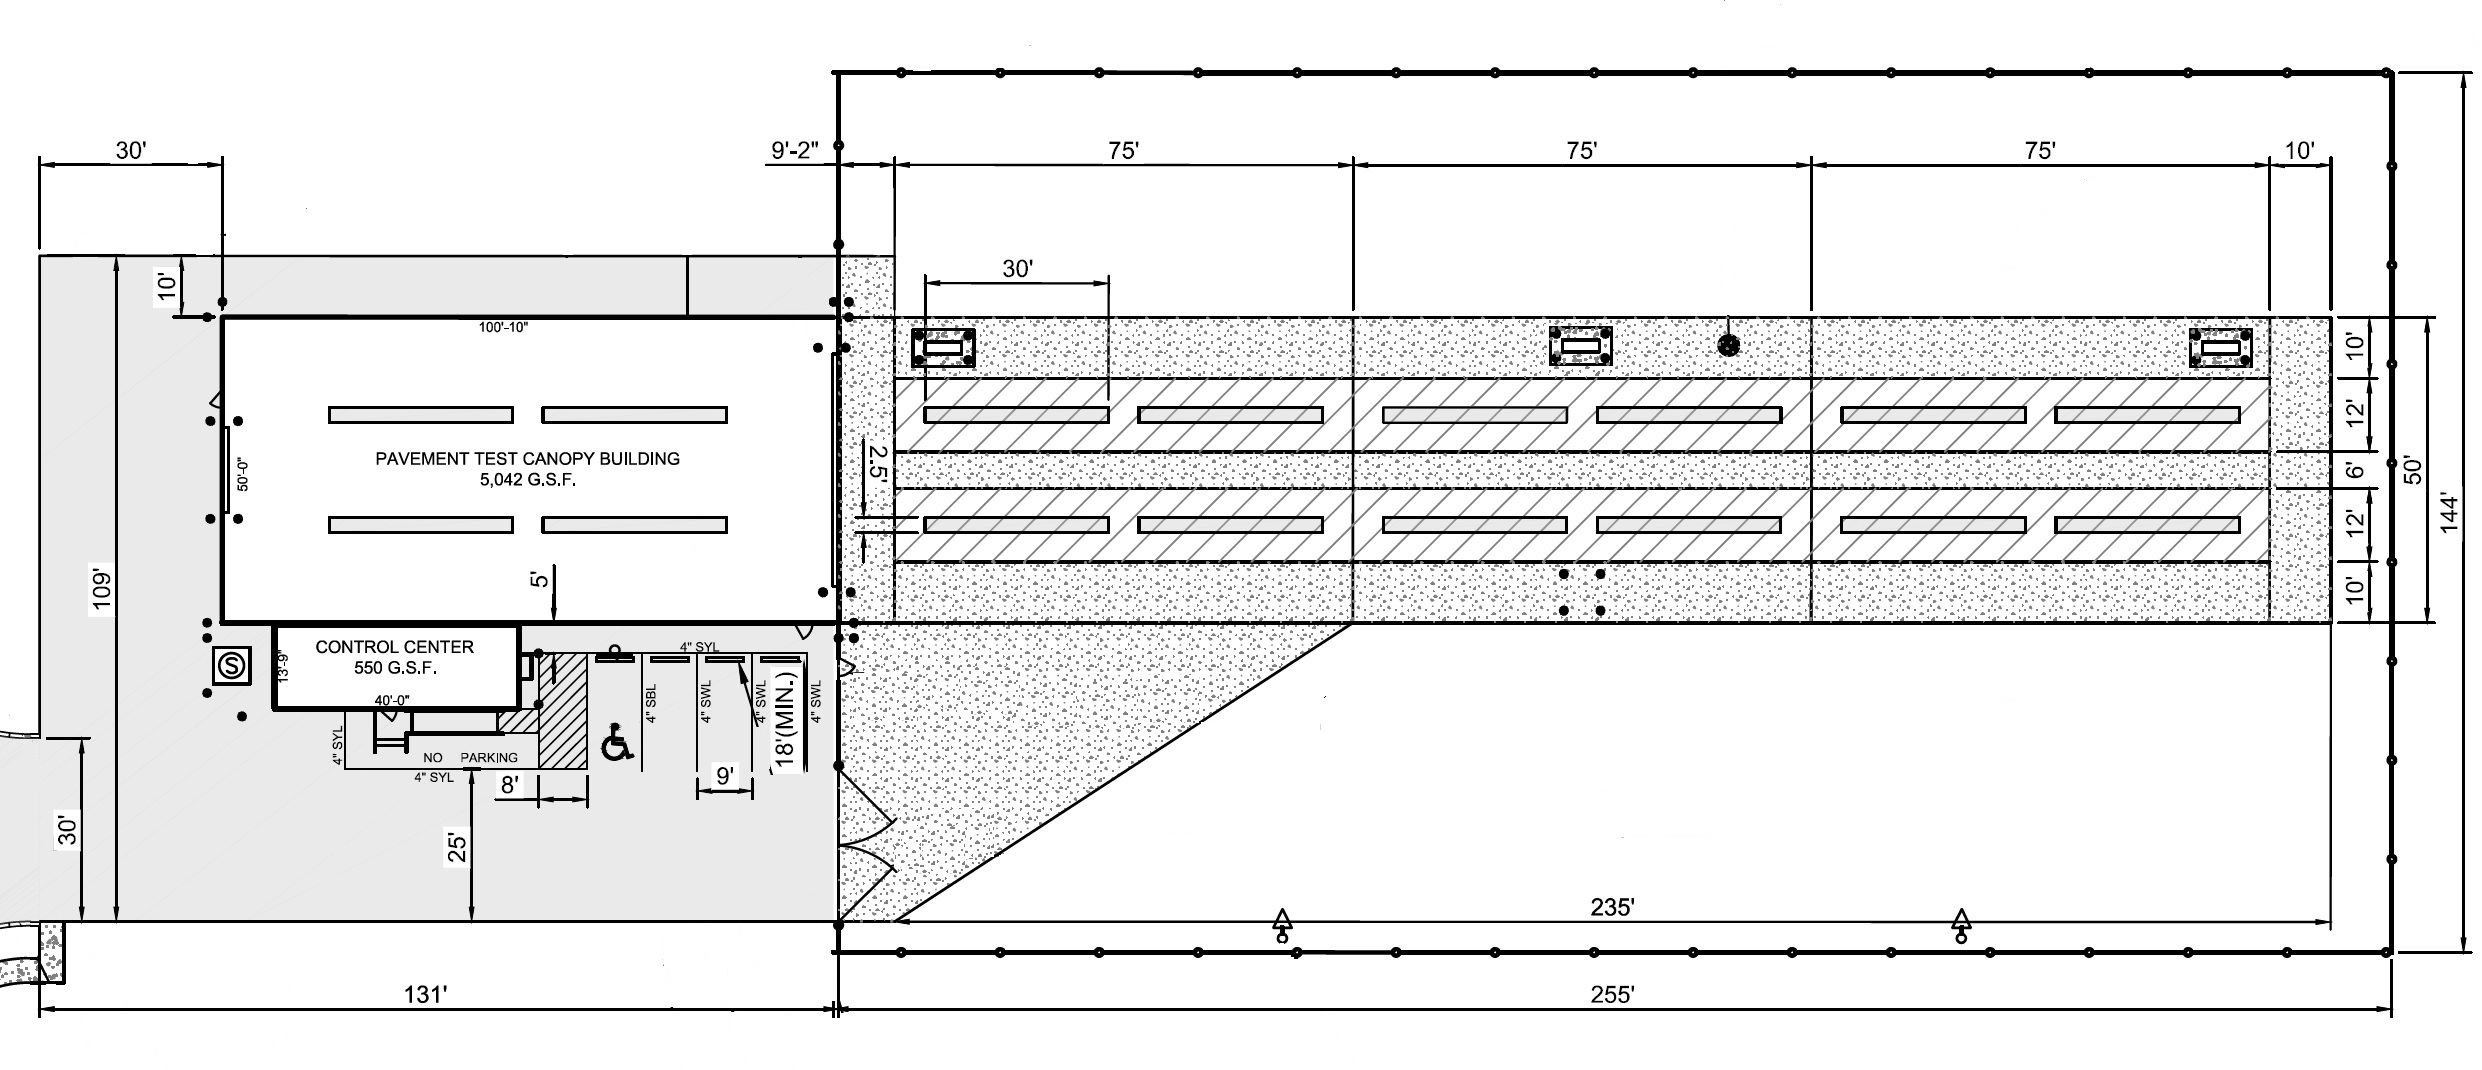 RUAPTF Facilities - Layout